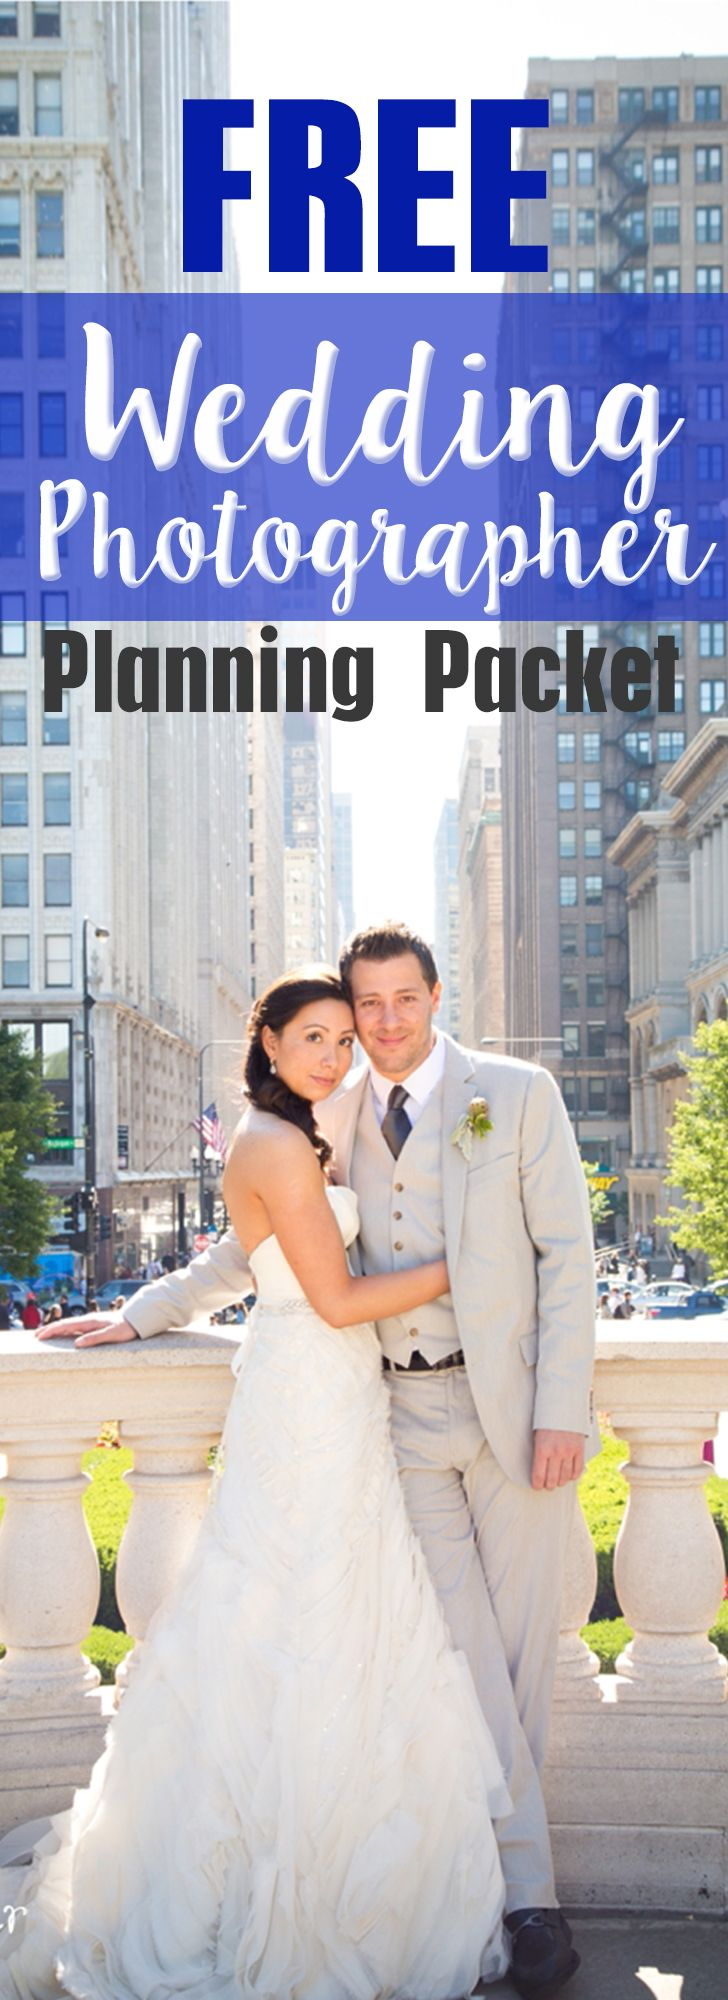 8 Wedding Photographer Planning Tips to ROCK the Day